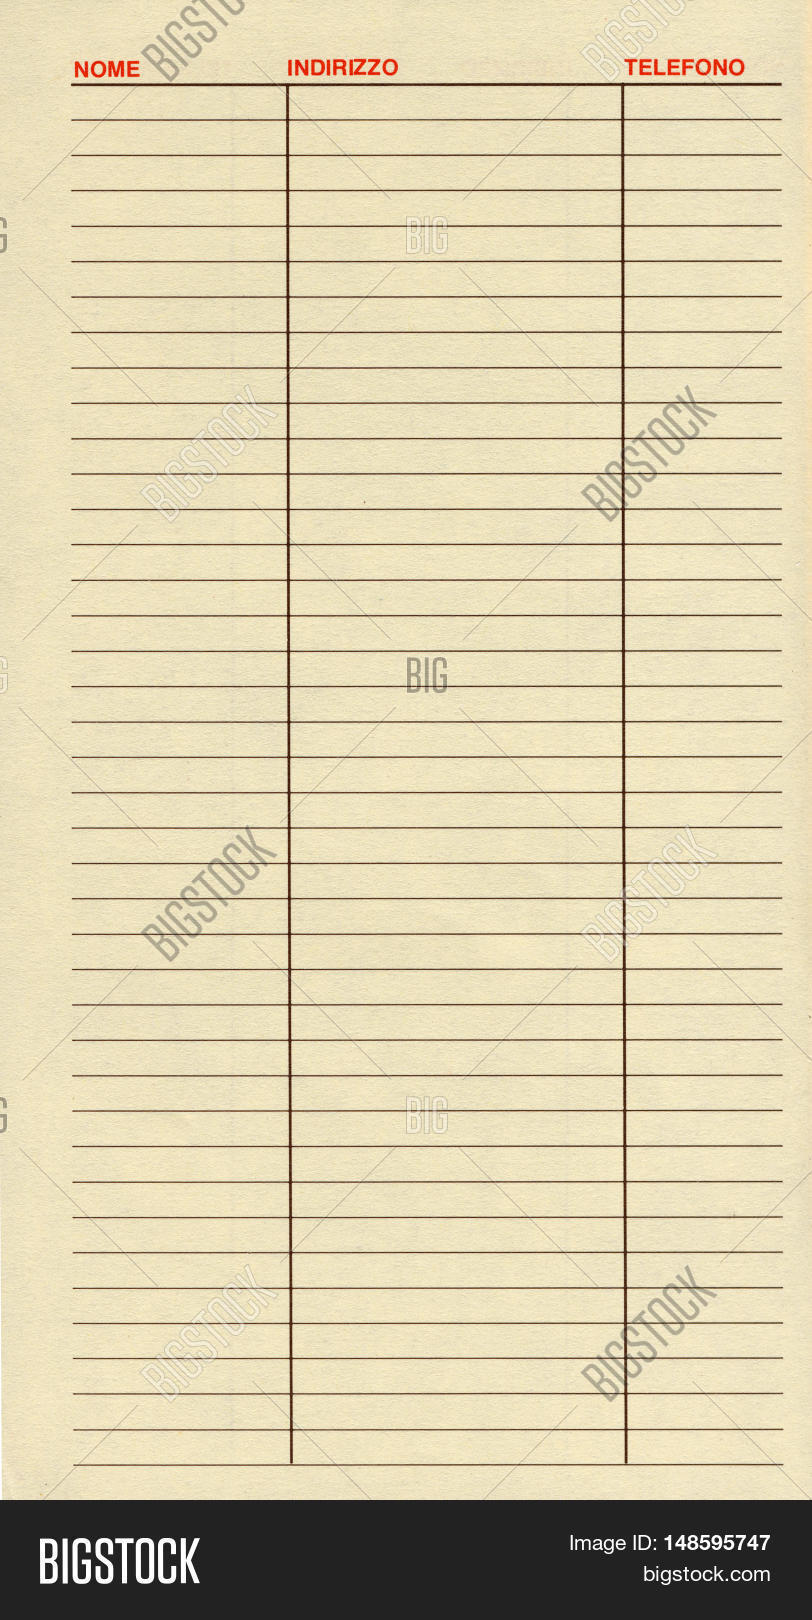 blank address book image photo free trial bigstock